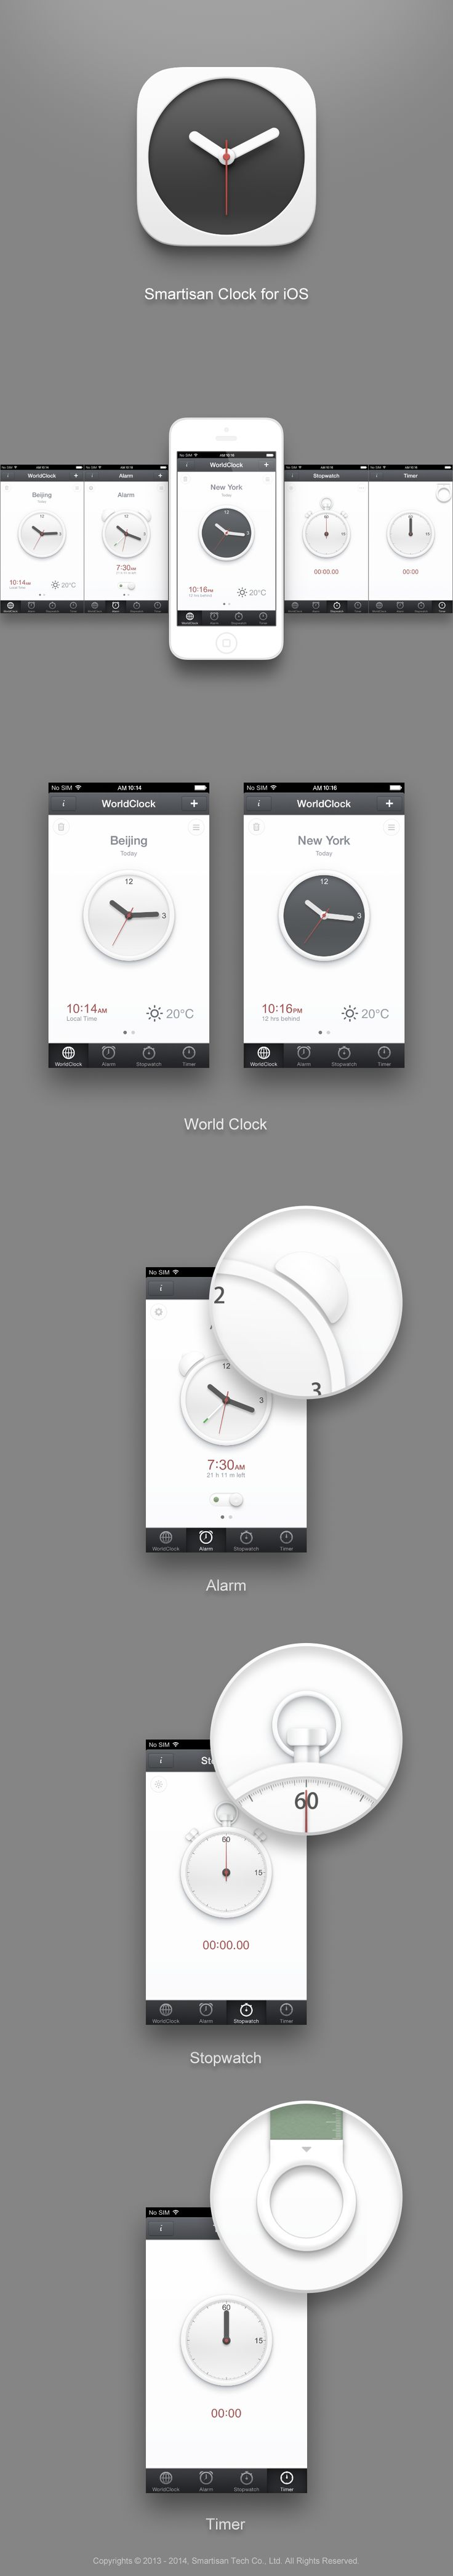 may be a bit too stylish, doesn't get more minimal than this  Smartisanos_clock